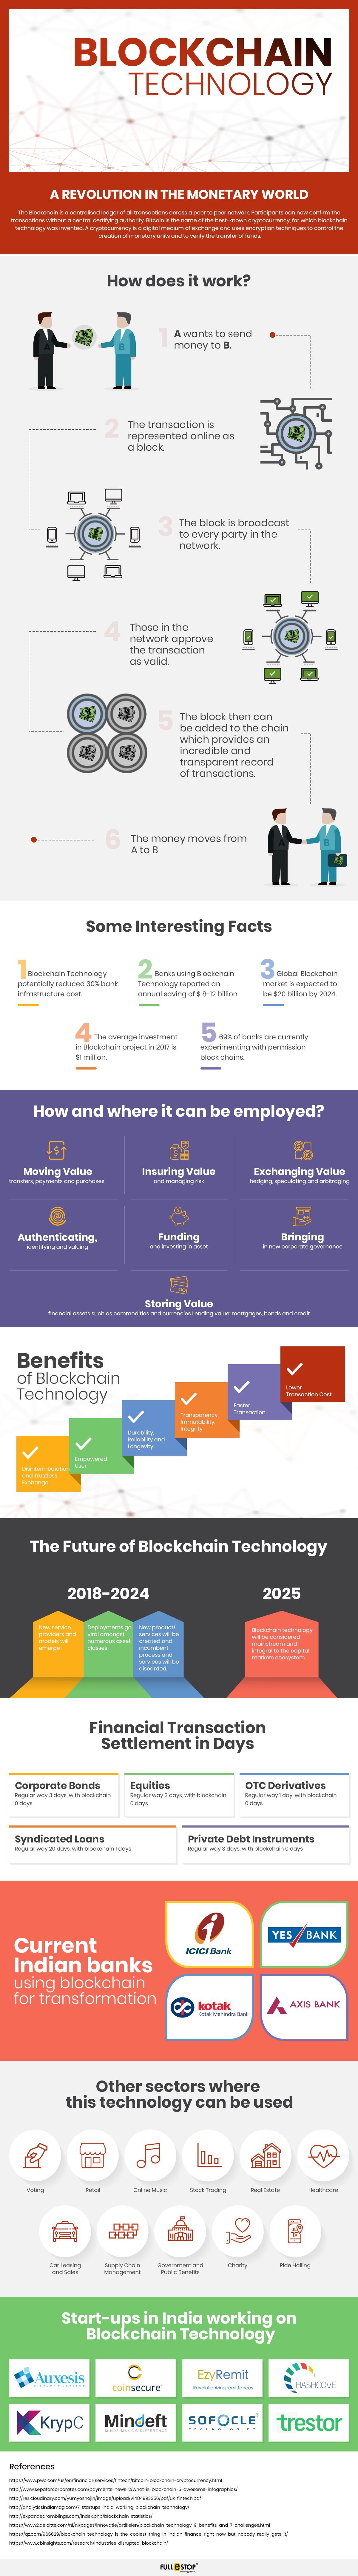 blockchain-technology_Infographic